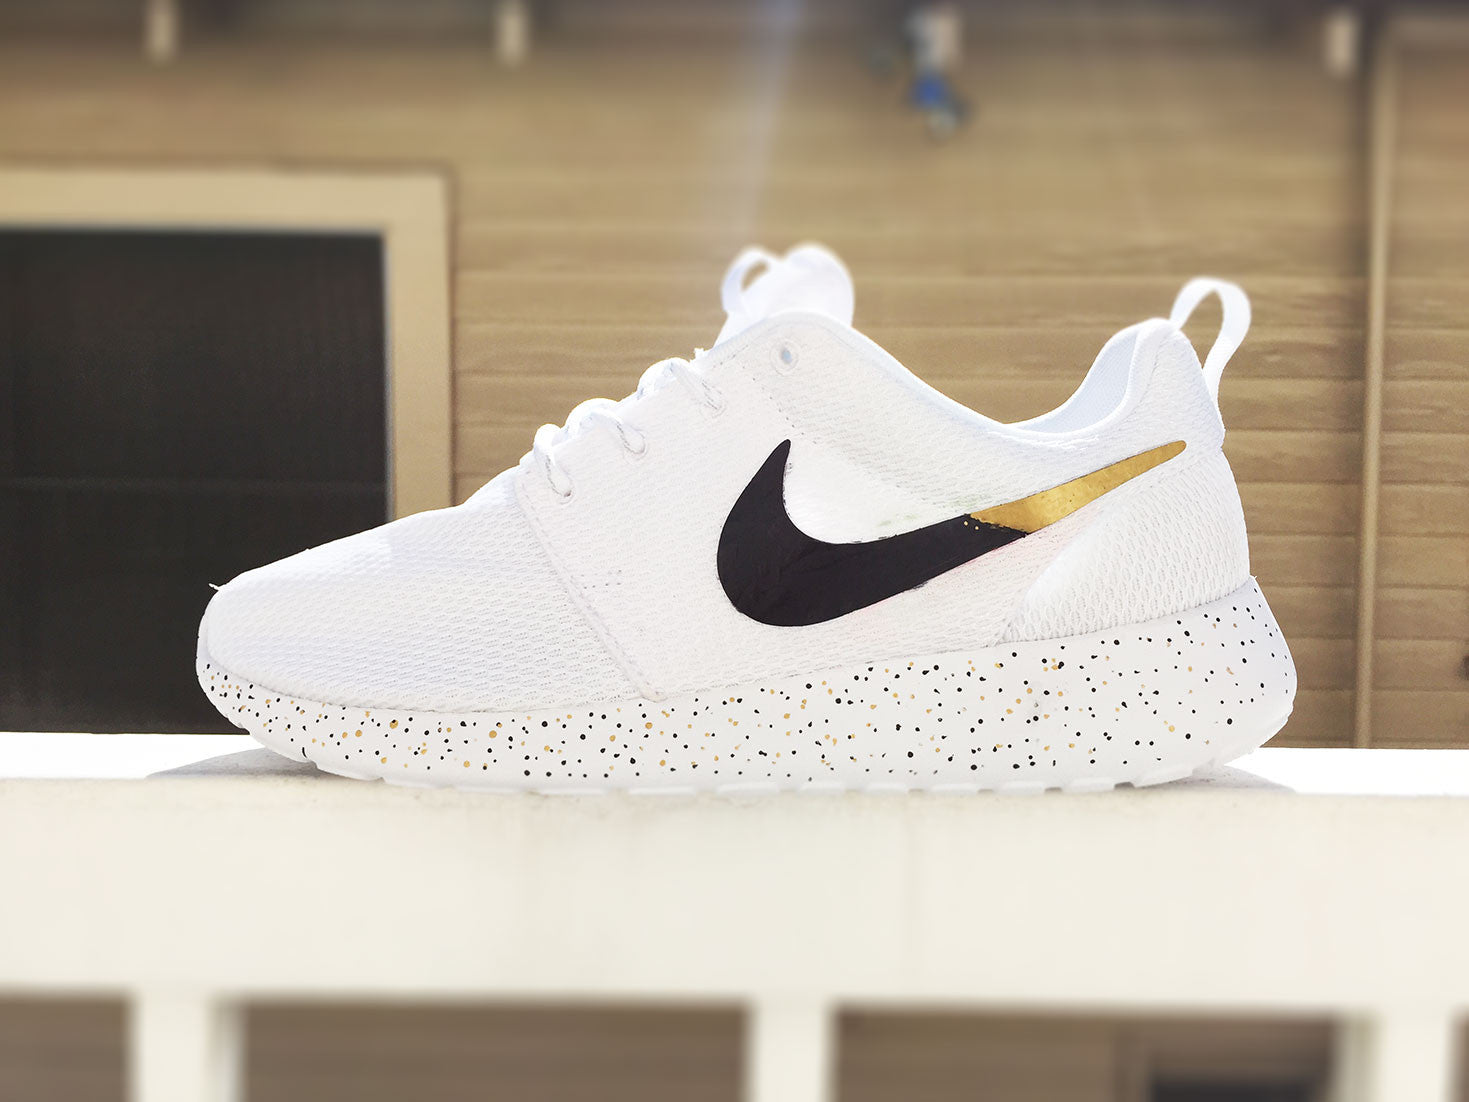 huge discount 12935 6732e Custom Nike Roshe Run sneakers for women, All white, Black and Gold,  Silver, specles, gold flakes, love, fashionable design